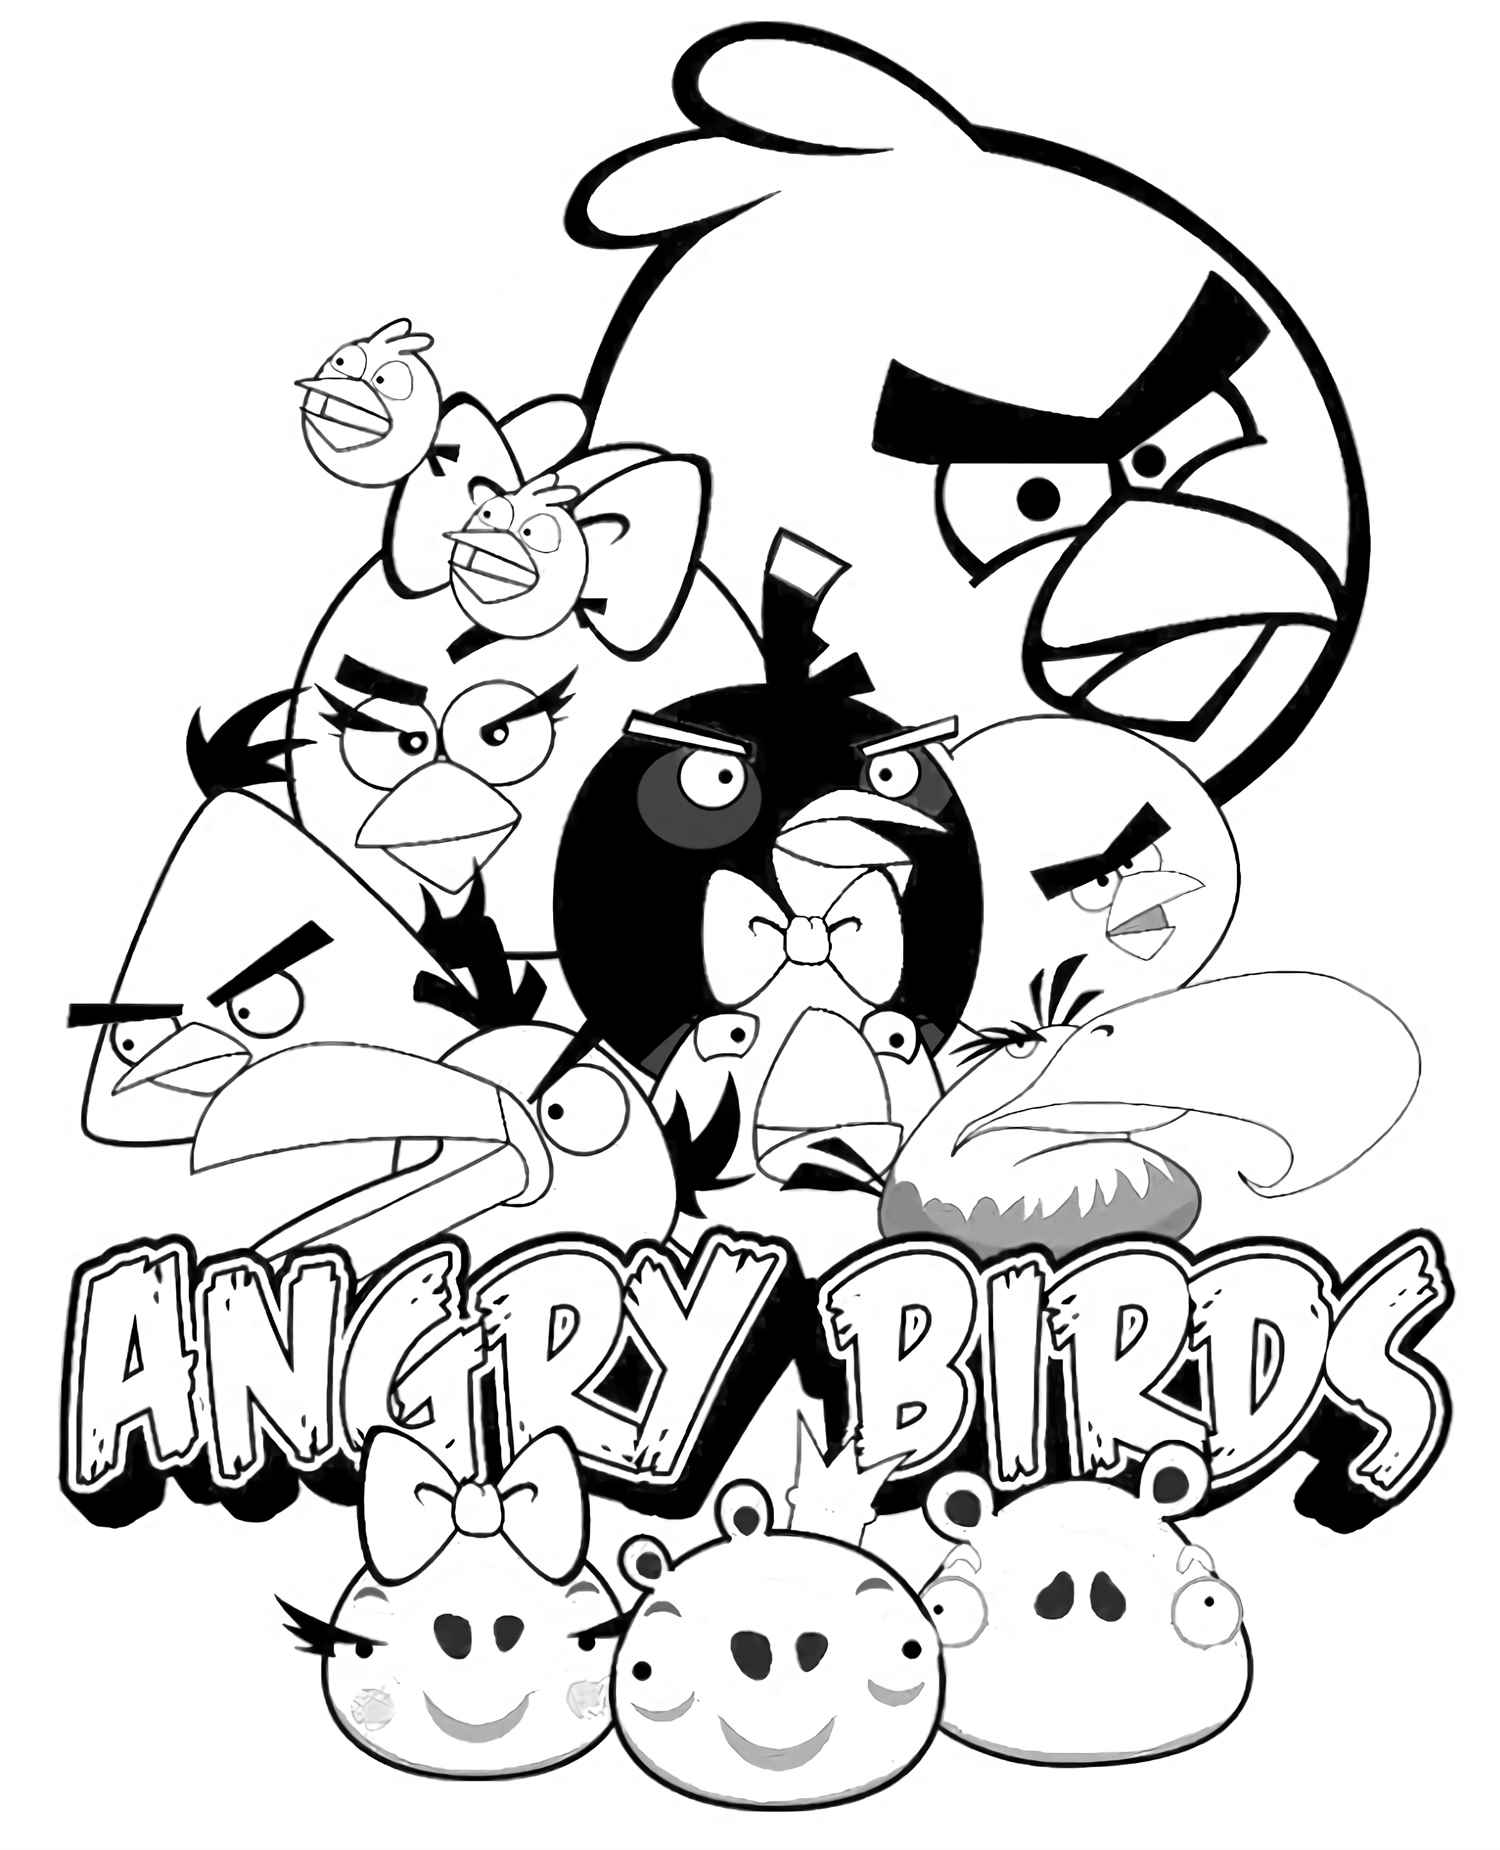 The Crew Of The Angry Birds Coloring Pages